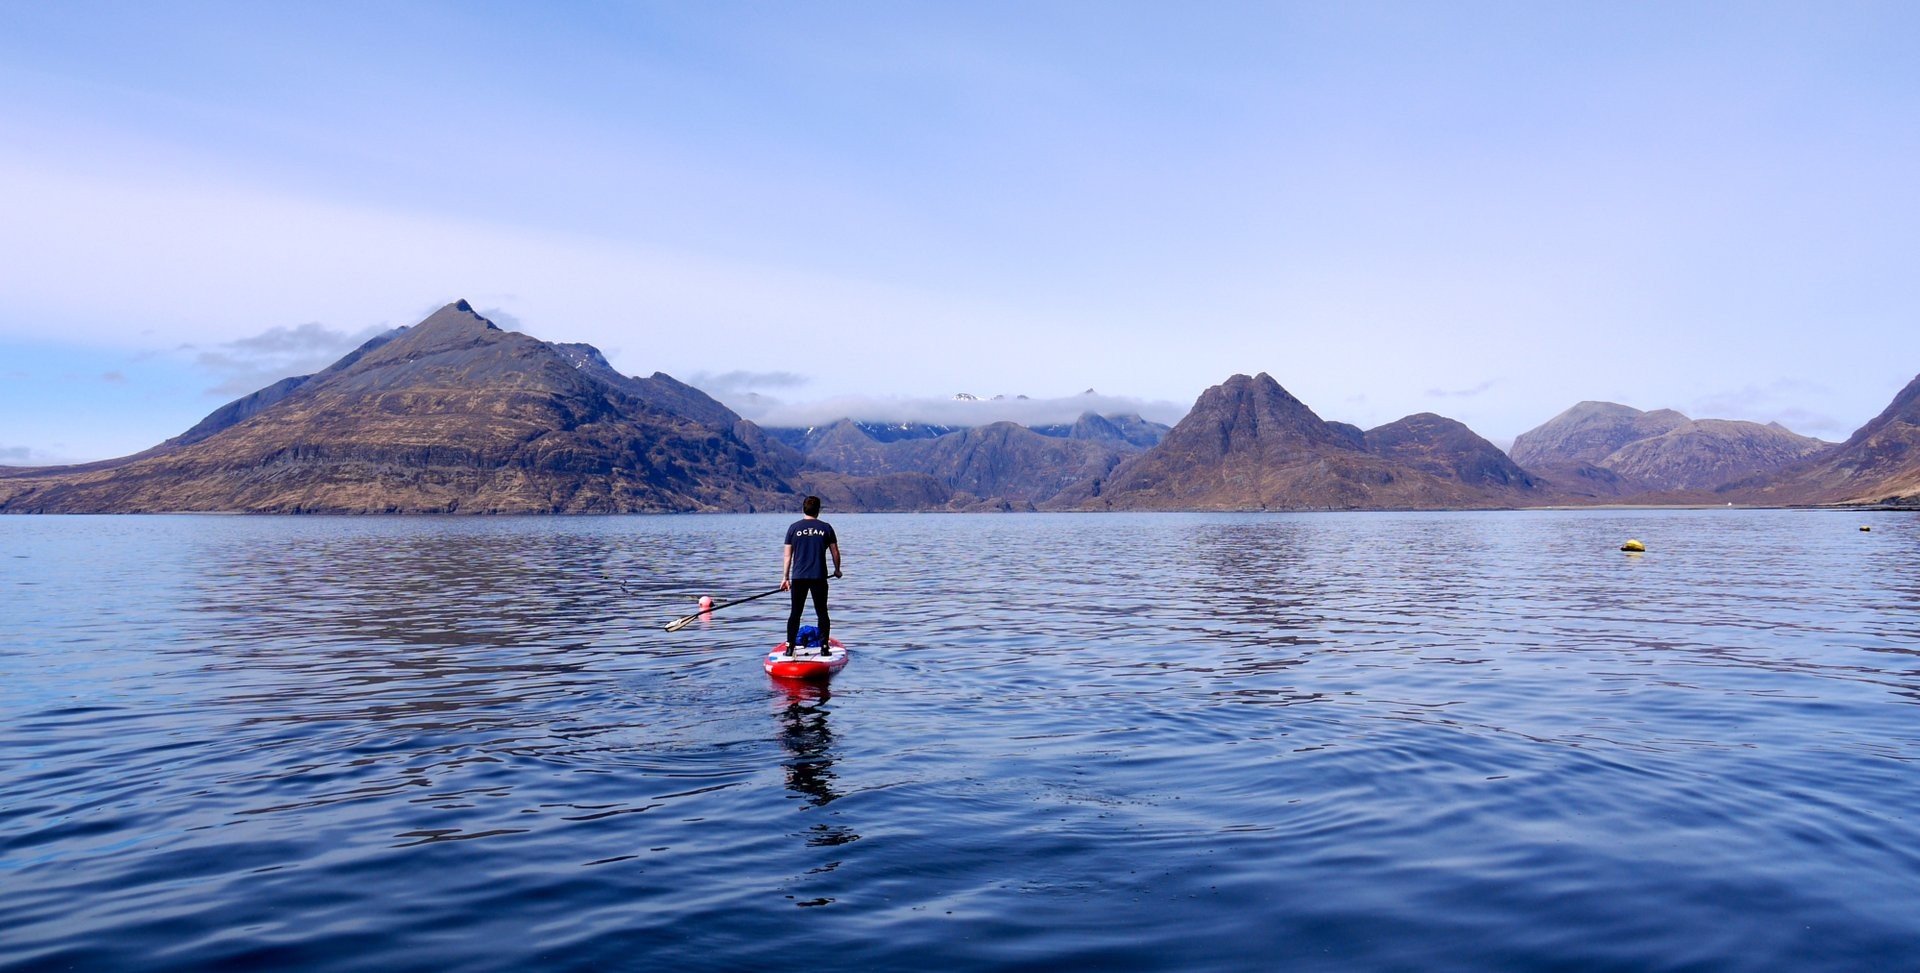 Stand Up Paddleboarding in Scotland 2020 - Best Time